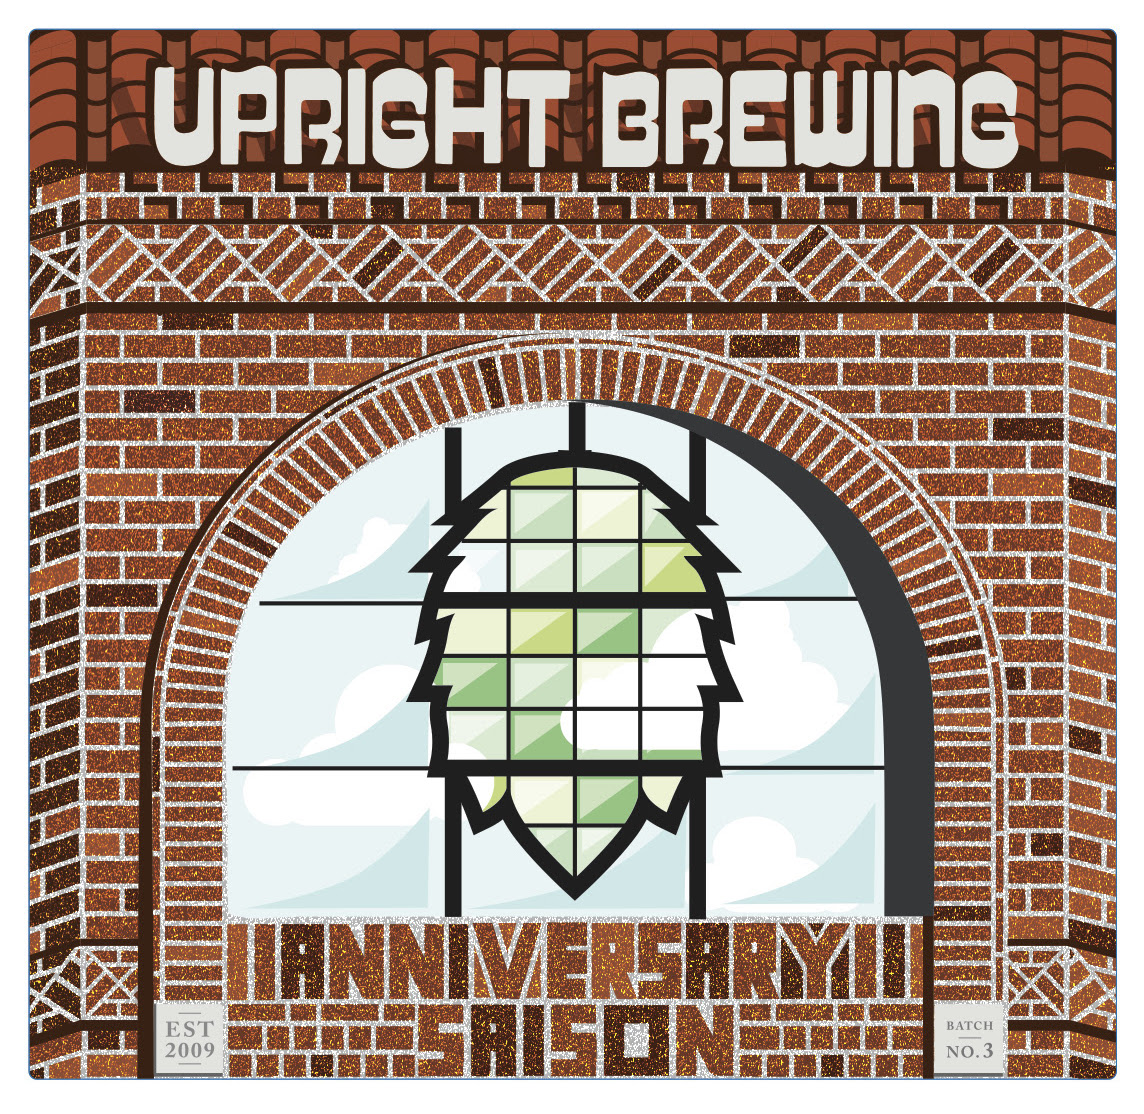 Upright Brewing 9th Anniversary Saison Label